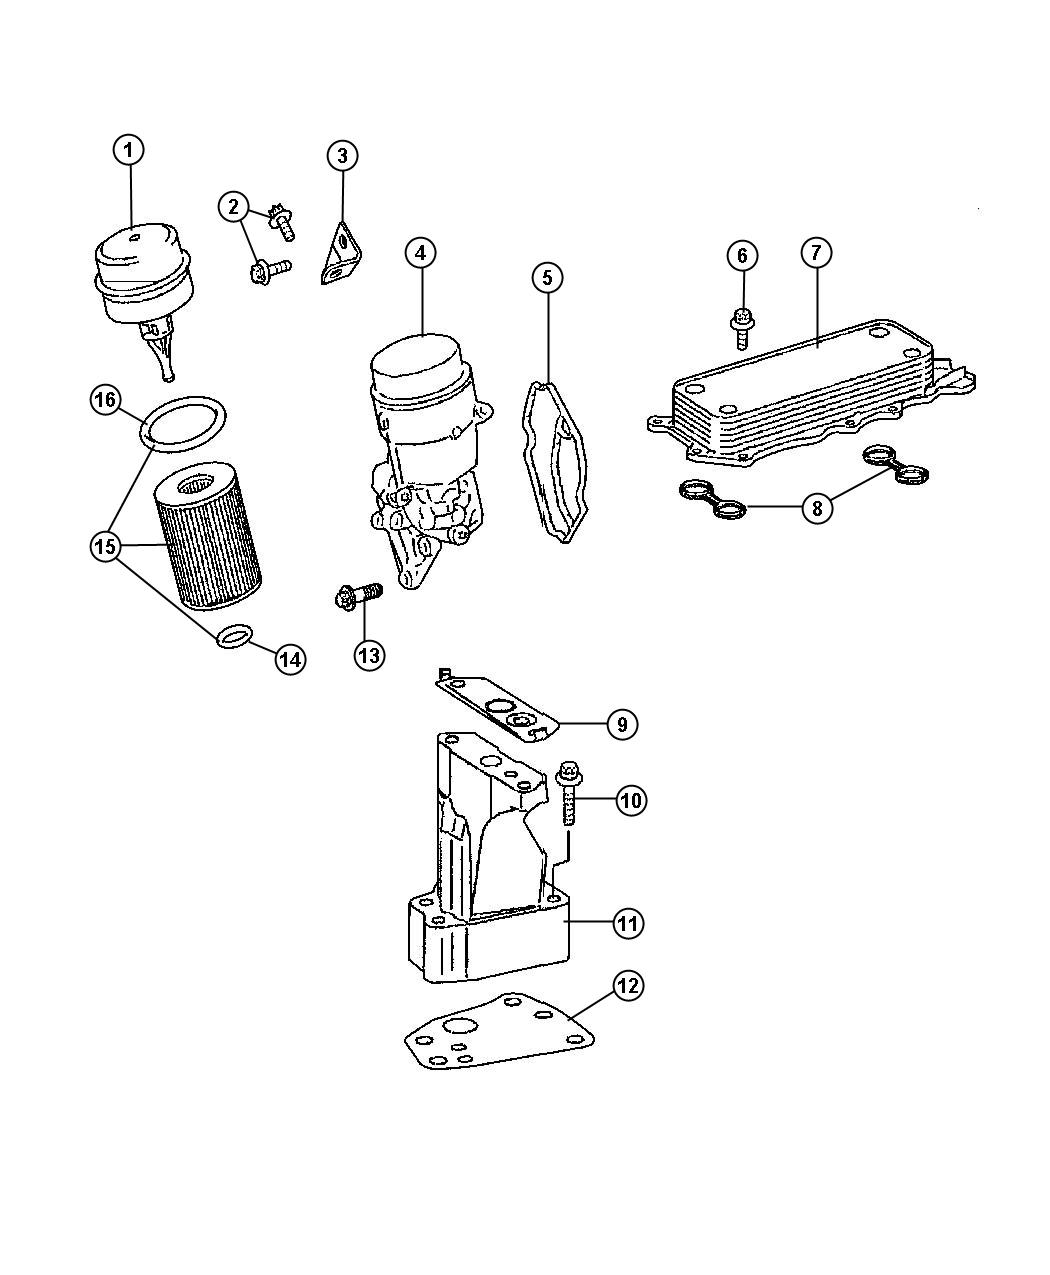 Engine Oil Filter And Housing 3.0L [3.0L V6 Turbo Diesel Engine]. Diagram